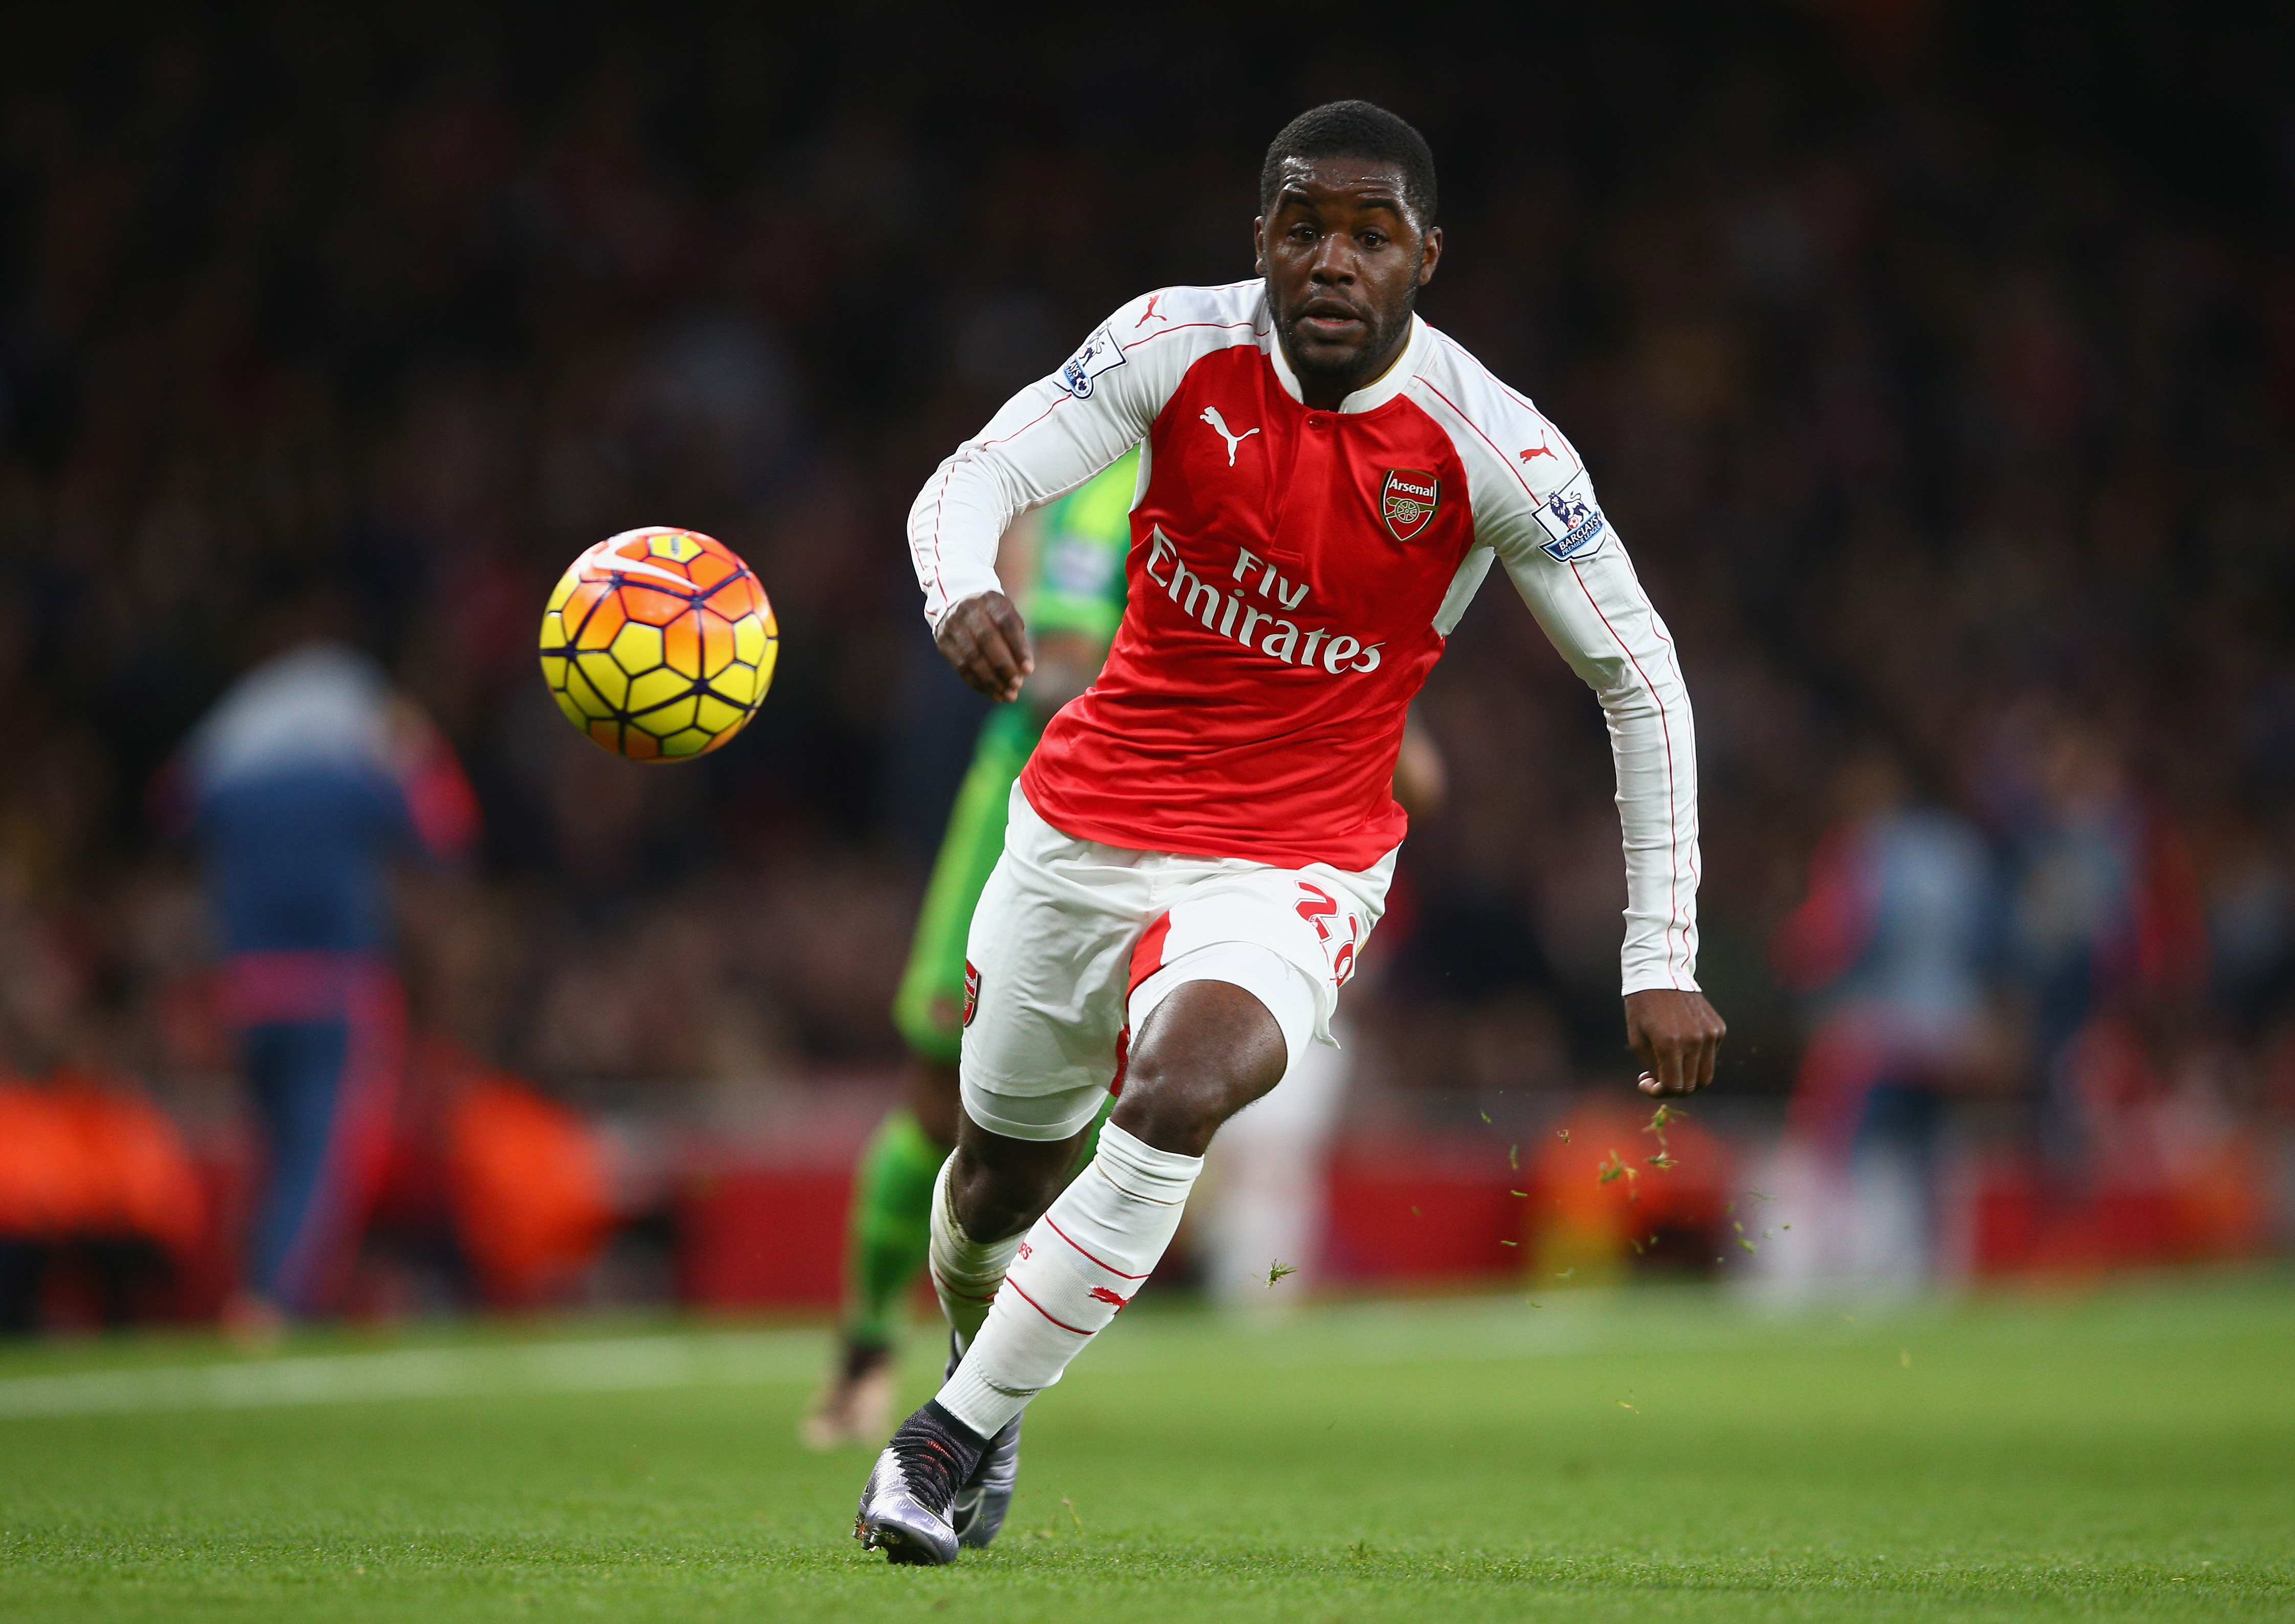 Arsenal's Joel Campbell hints at uncertainty over transfer future